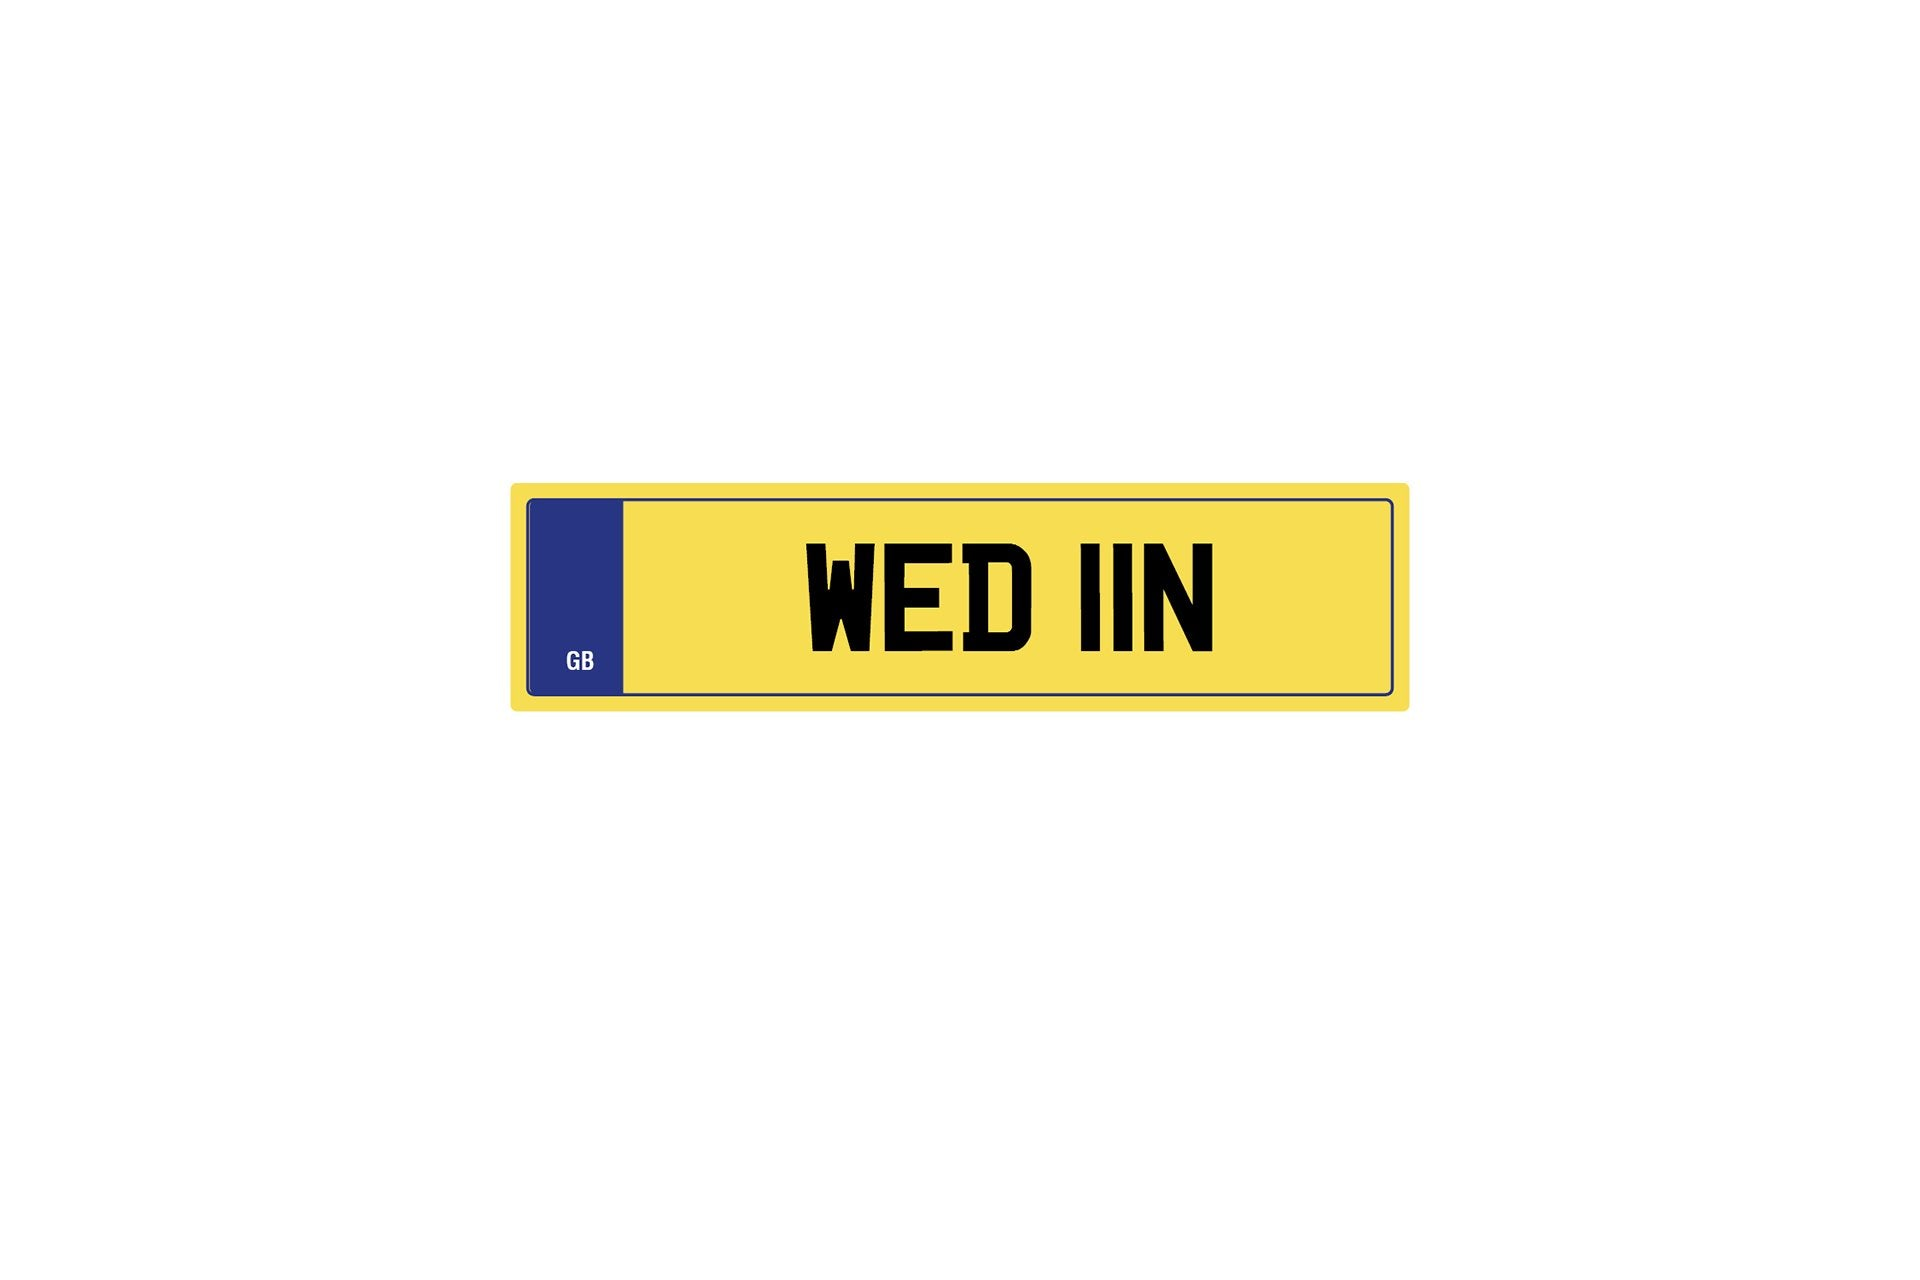 Private Plate Wed Iin by Kahn - Image 221